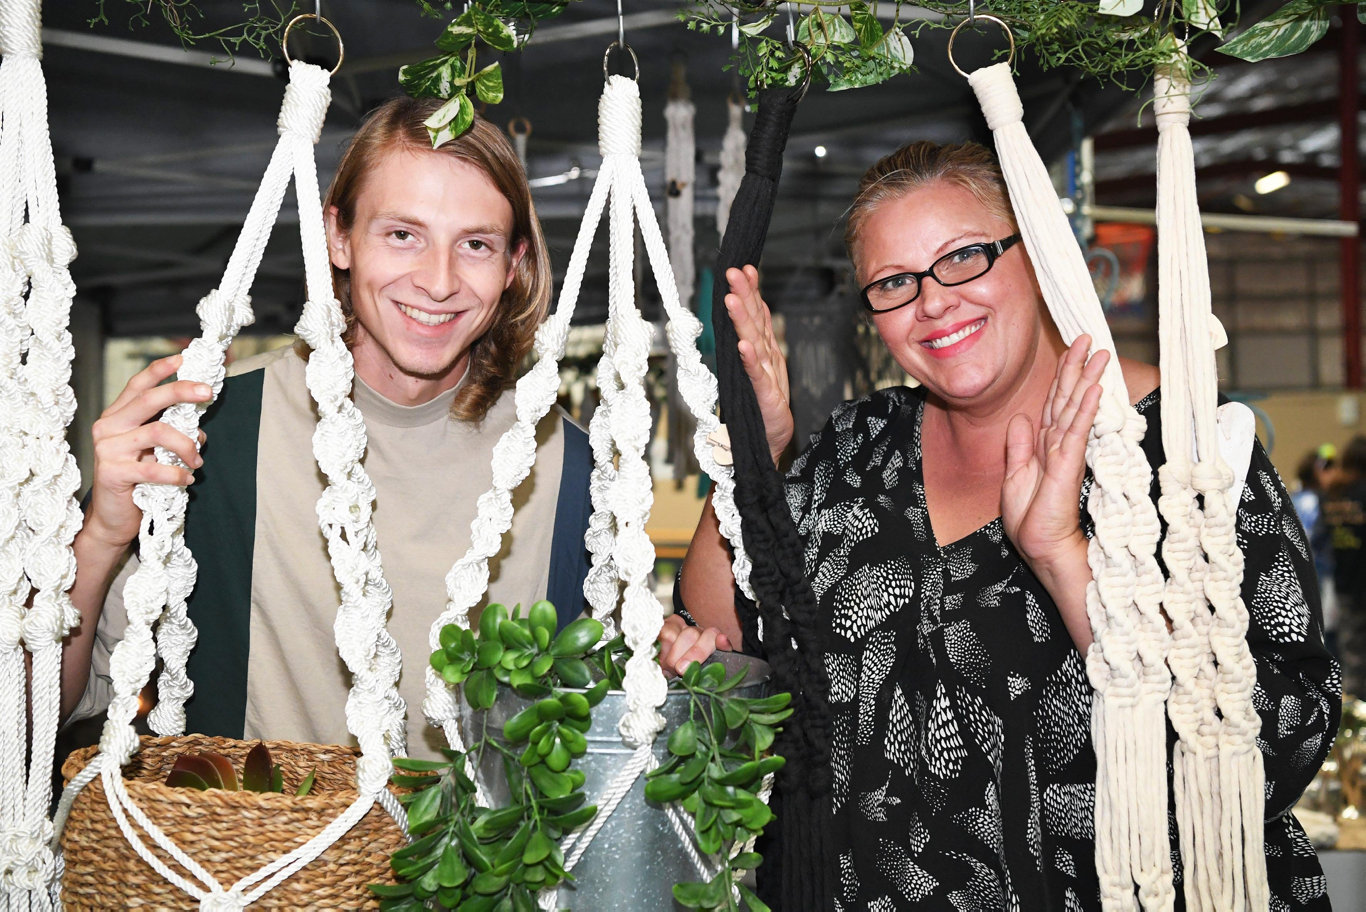 Handmade Expo - Luke and Julie Nash from Stuff n' Candles.